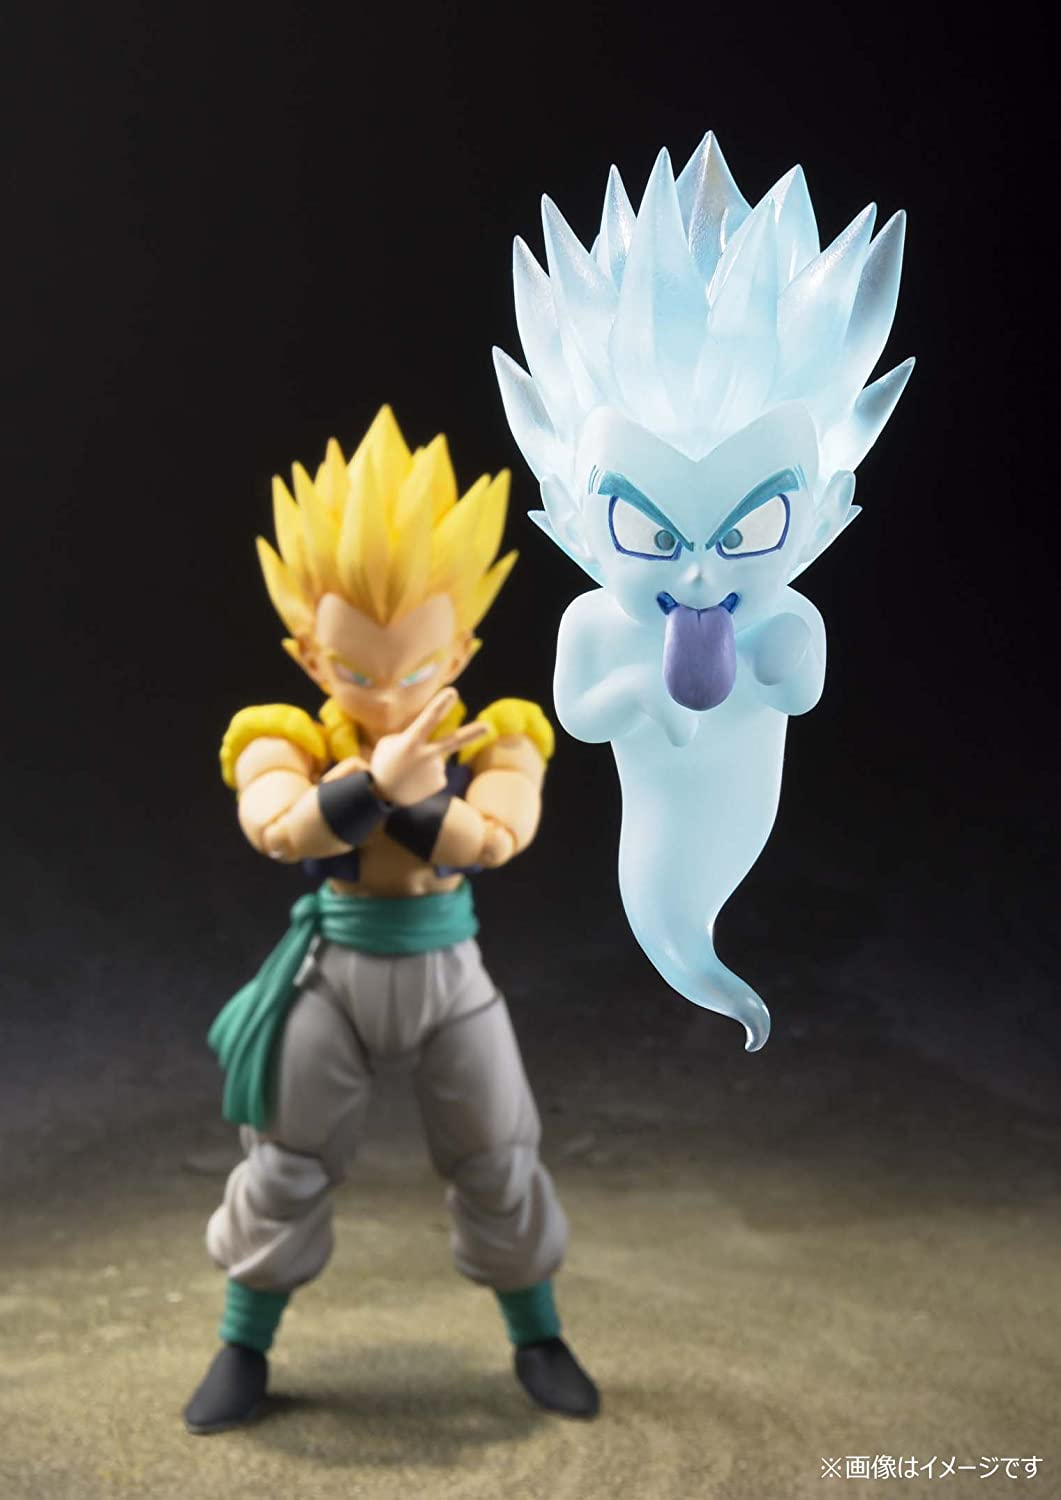 Tamashii Nations S H Figuarts Super Saiyan Gotenks Dragonball Action Figures Statues Toys Games It exceeded the perfection shining from the crystal in saviorhuckmon's chest, assumed its ultimate form, and acquired the title of a royal knight, the highest rank of network security. monetariza solucoes financeiras empresariais